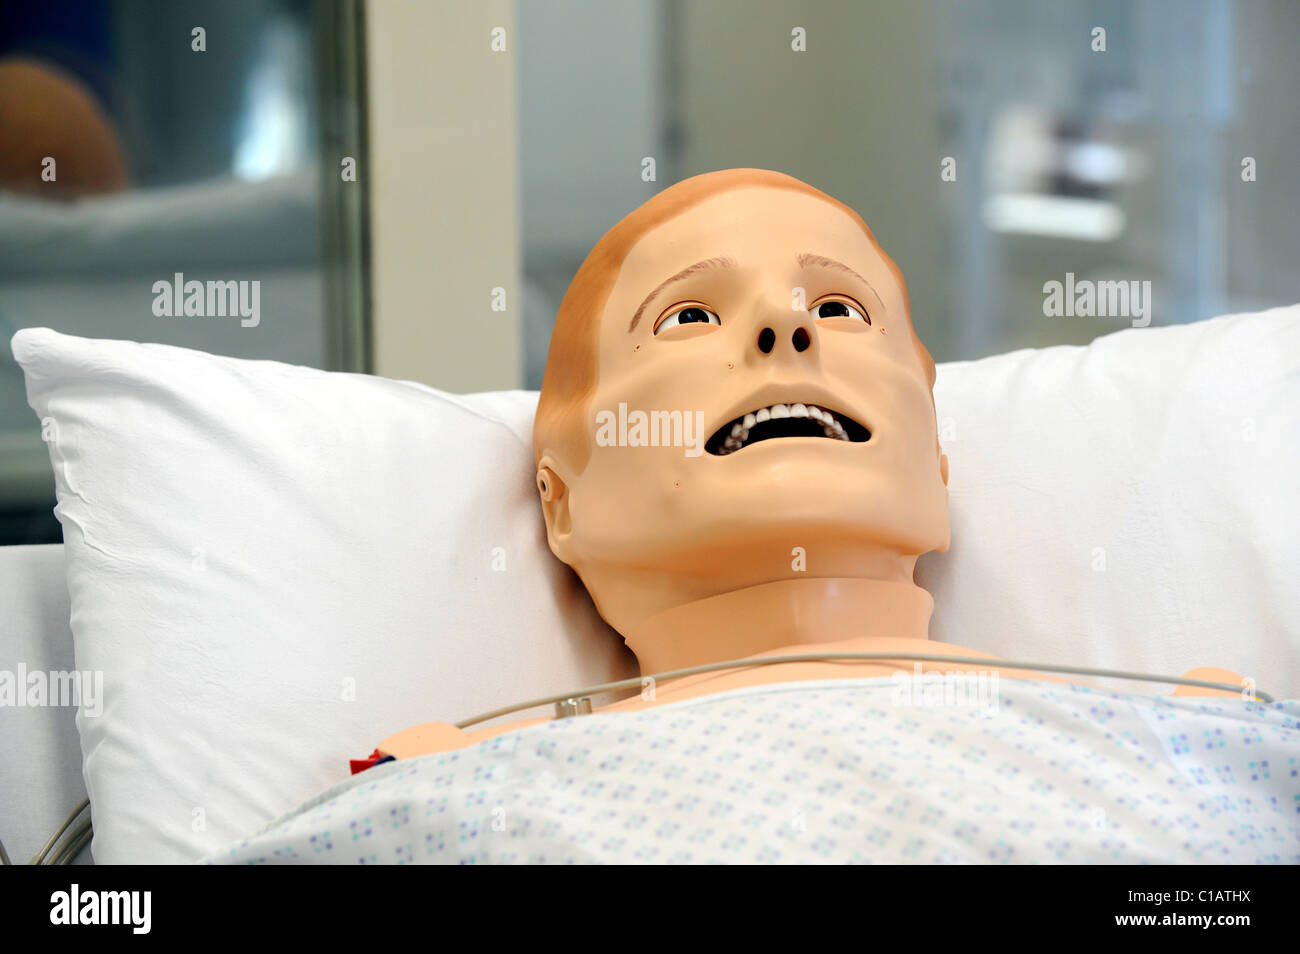 SimMan 3G a new dummy patient that responds like a human inside the new Simulation Suite at Worthing hospital - Stock Image